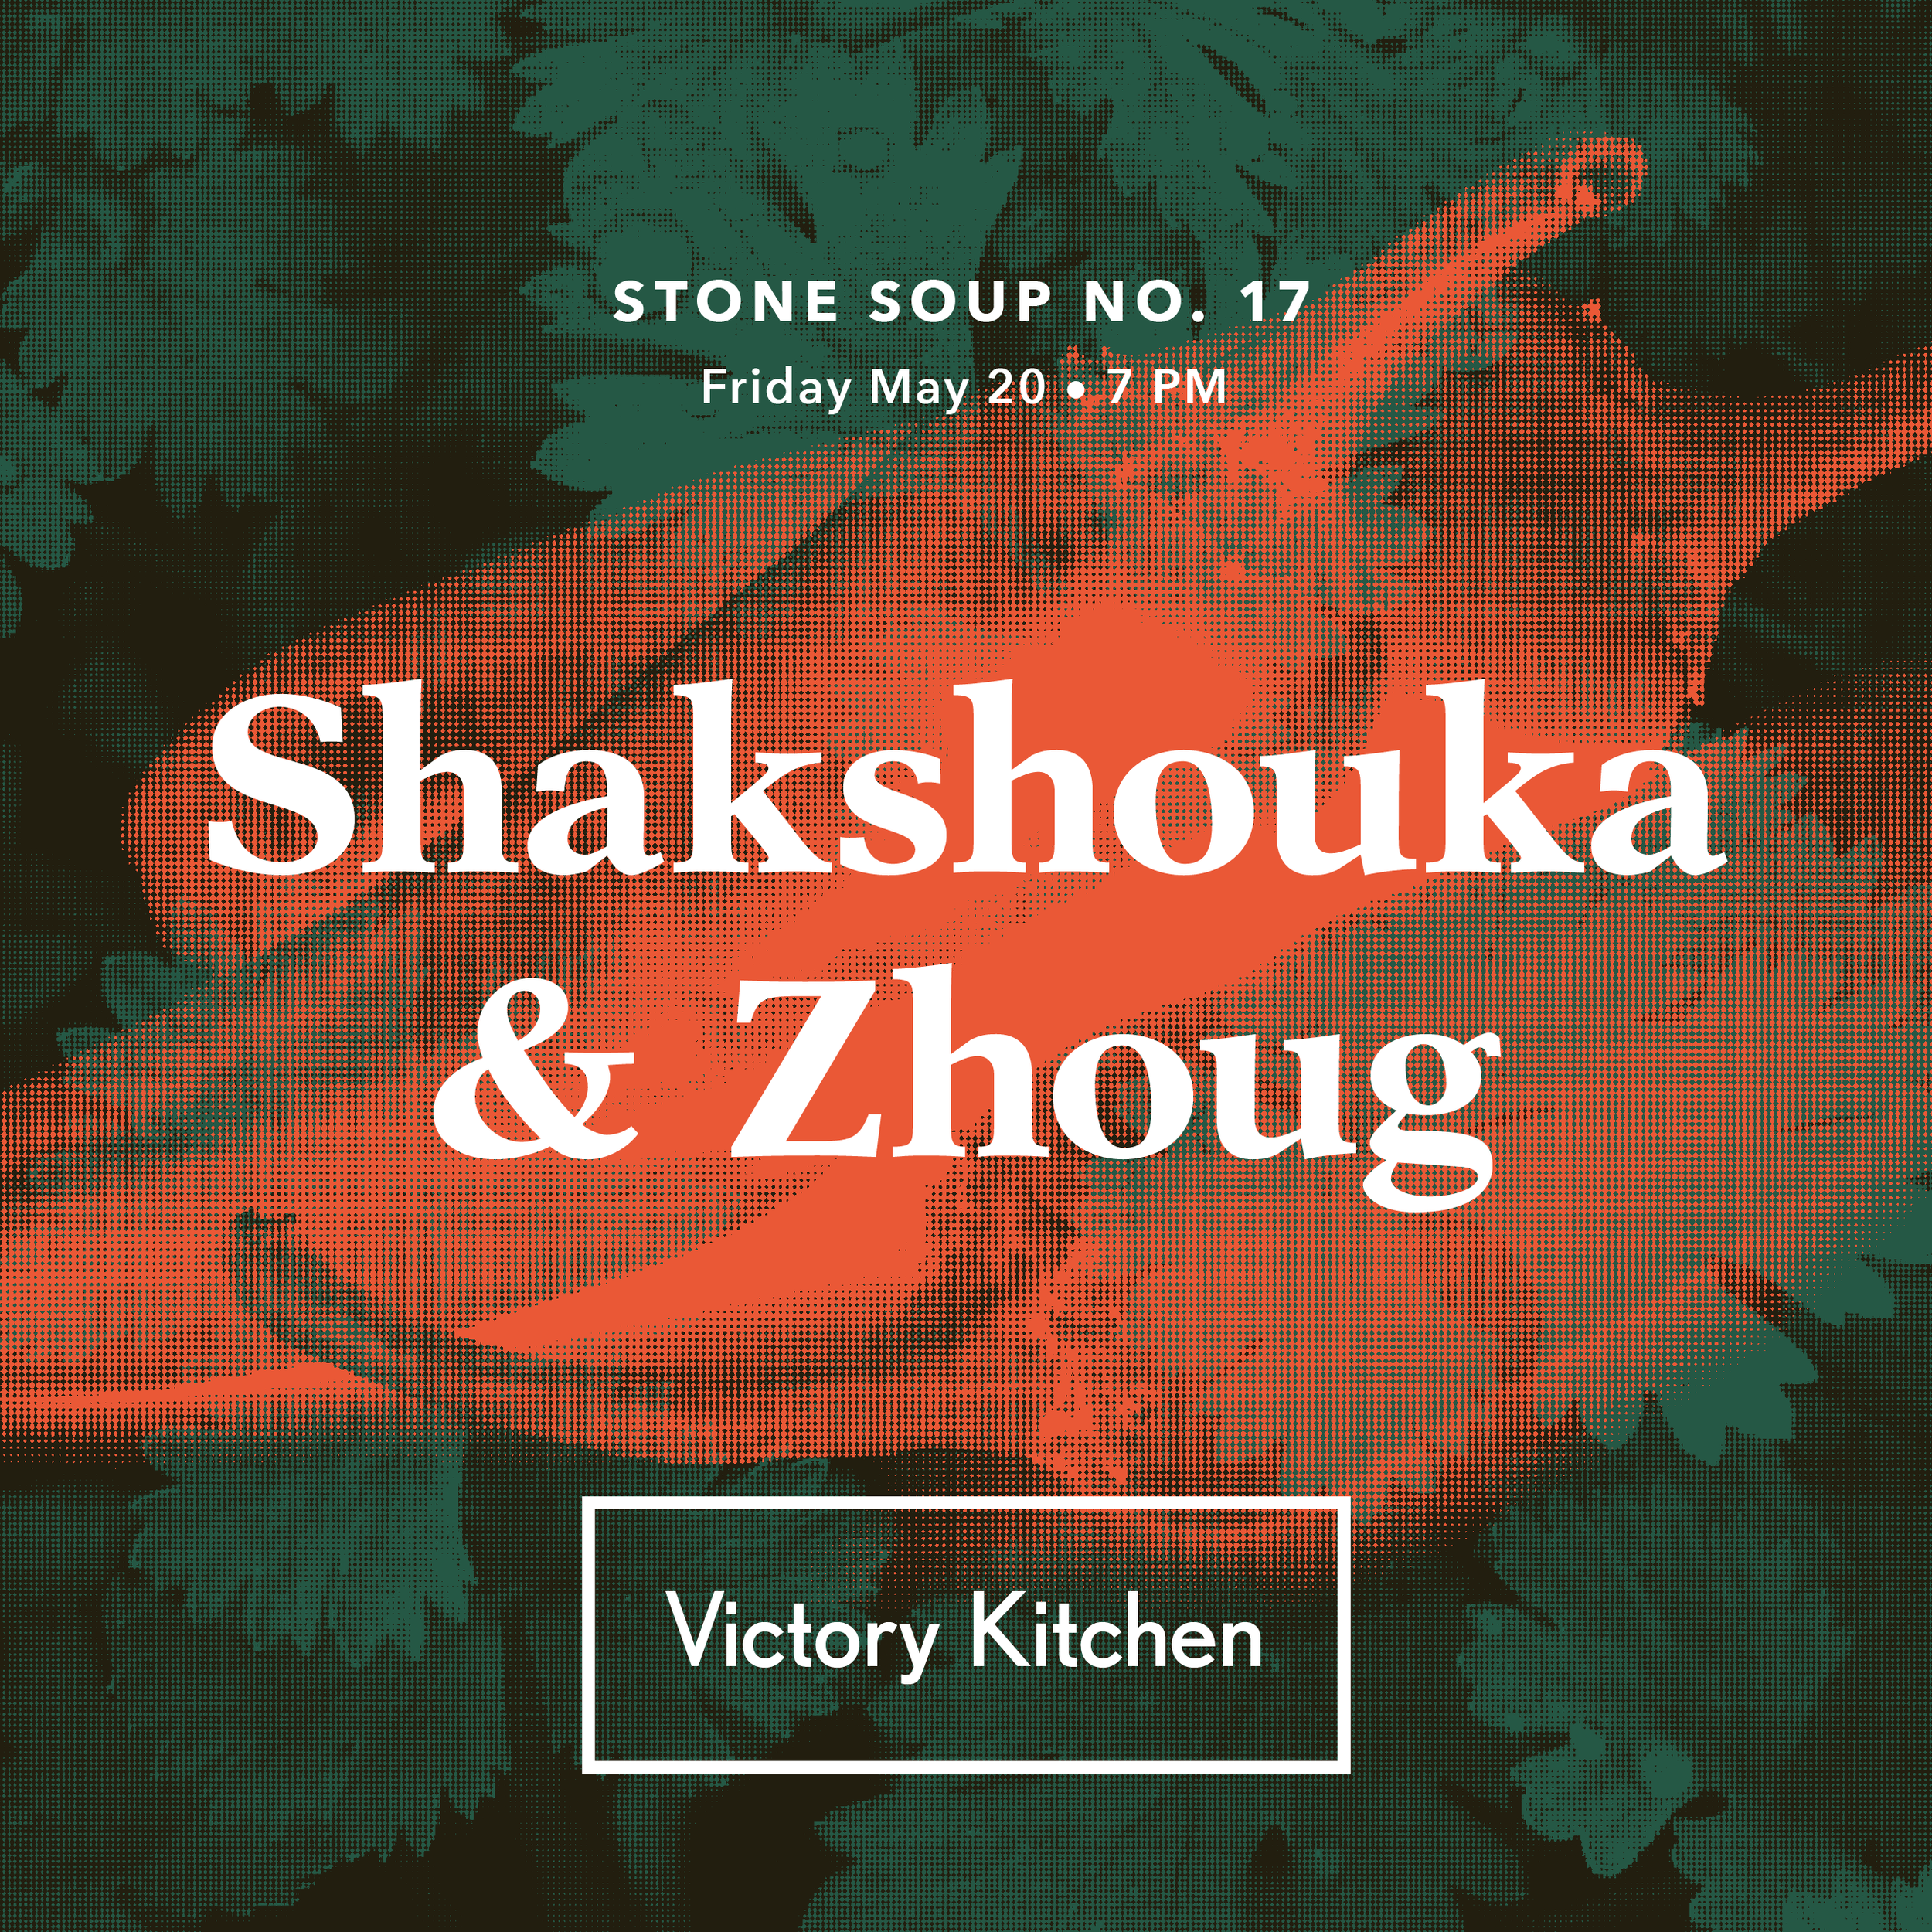 stonesoup_flyer_052016-01.png